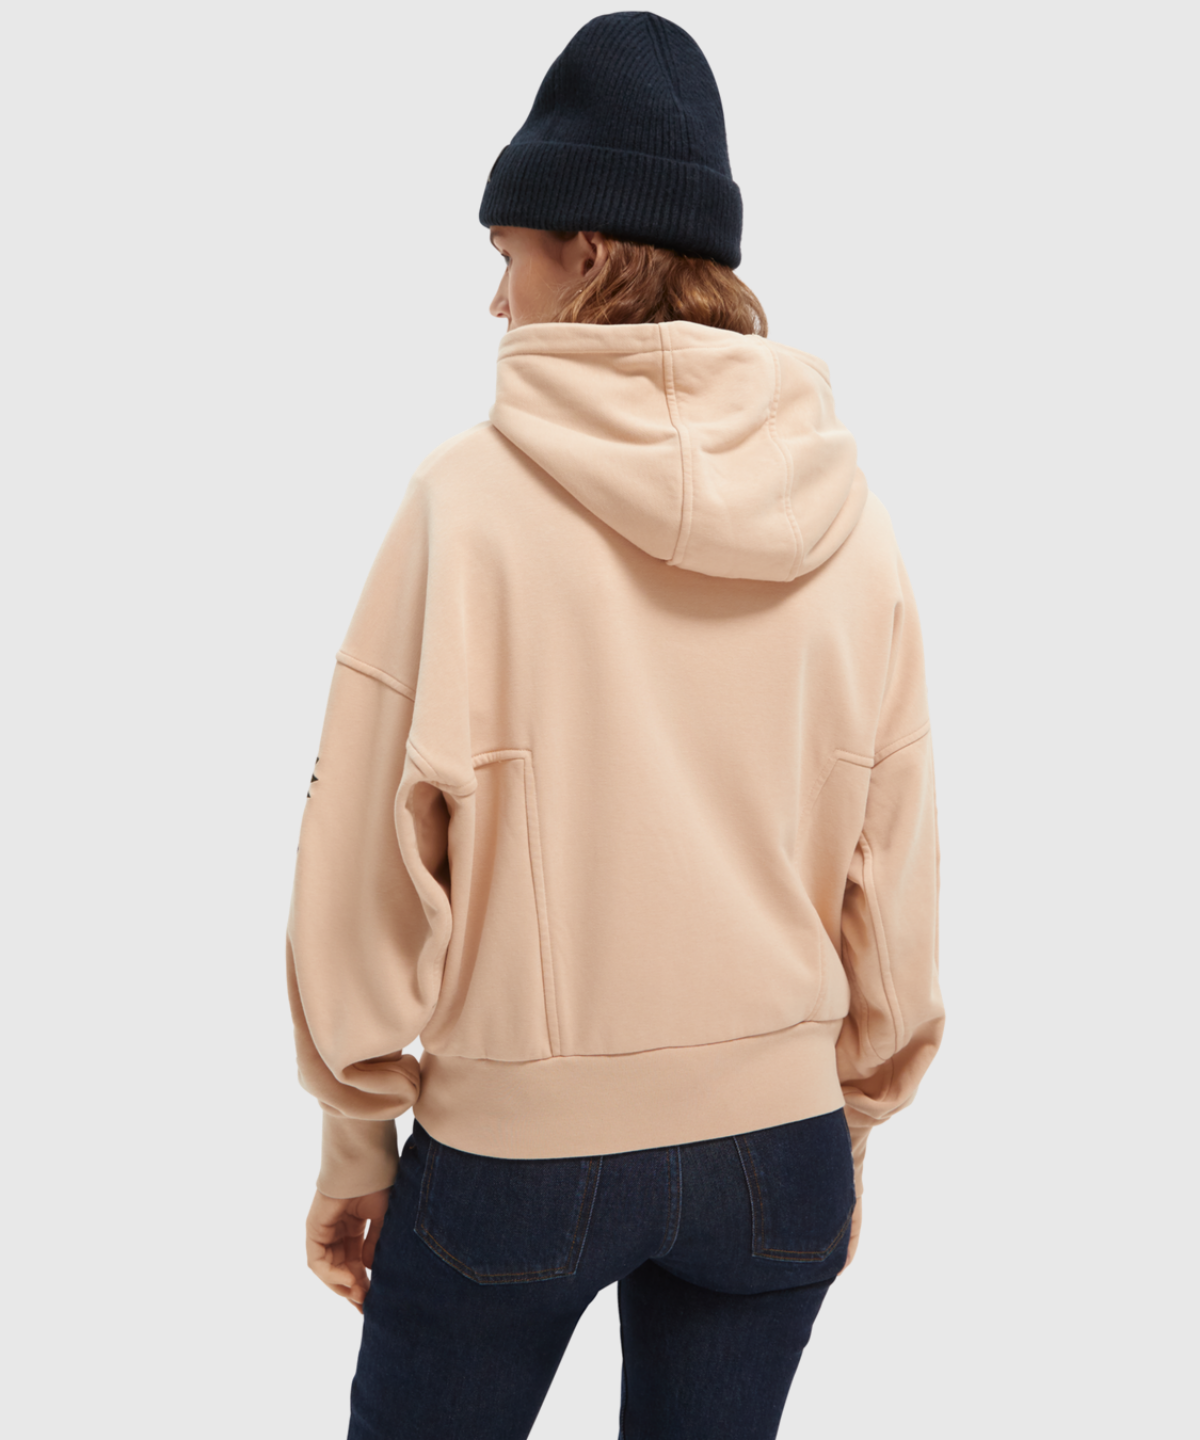 Oversized Hoodie Contains Organic Cotton